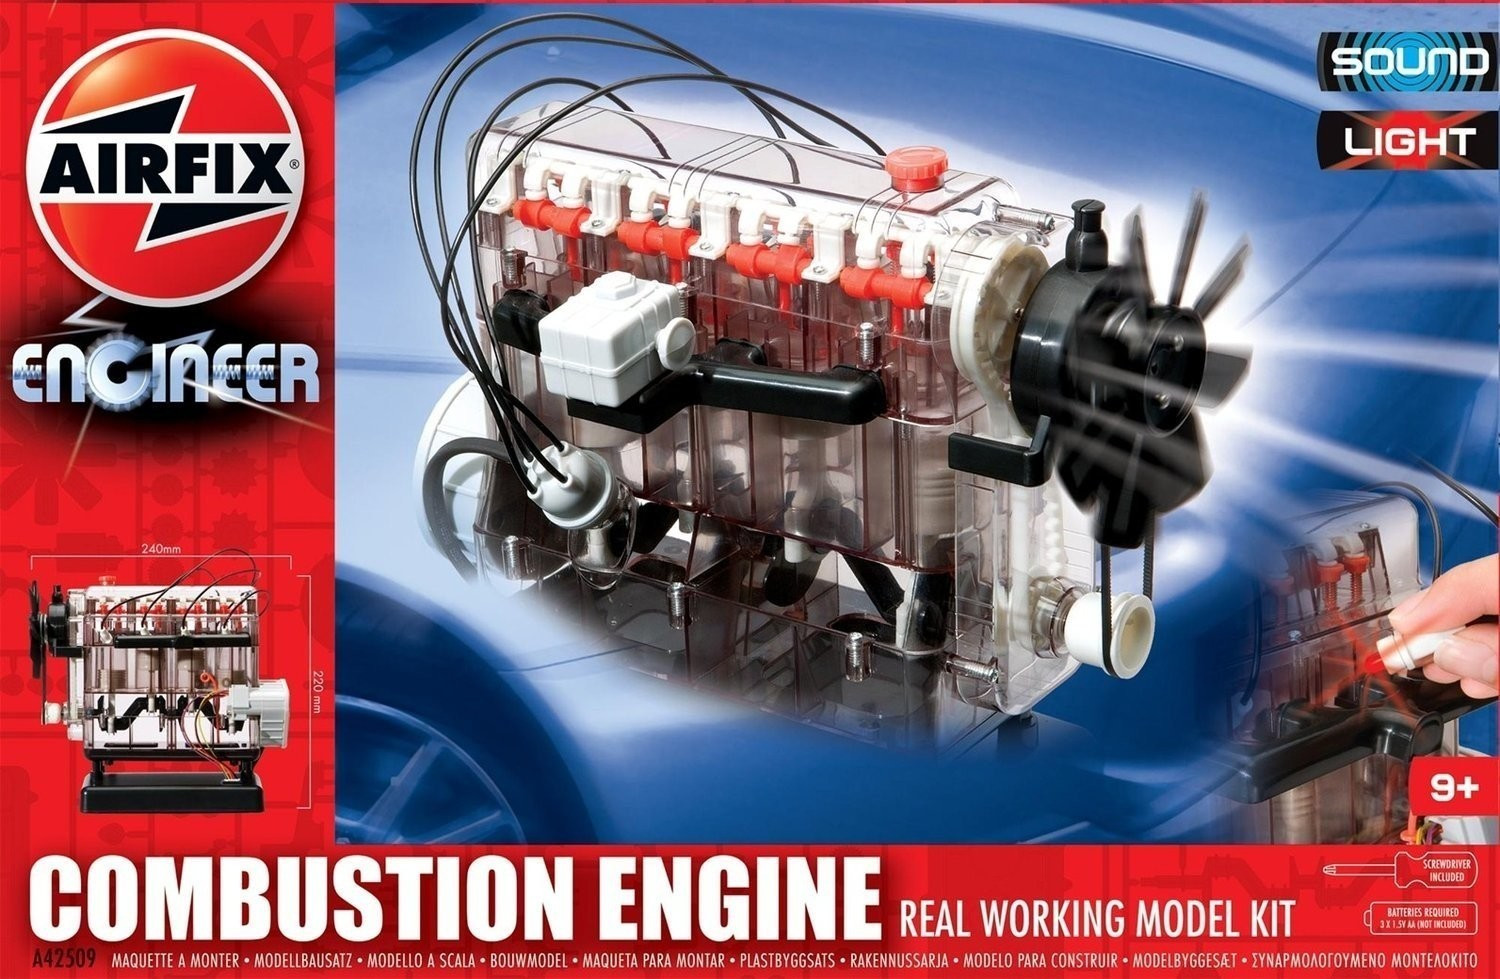 Airfix Engineer - Combustion Engine (A42509)